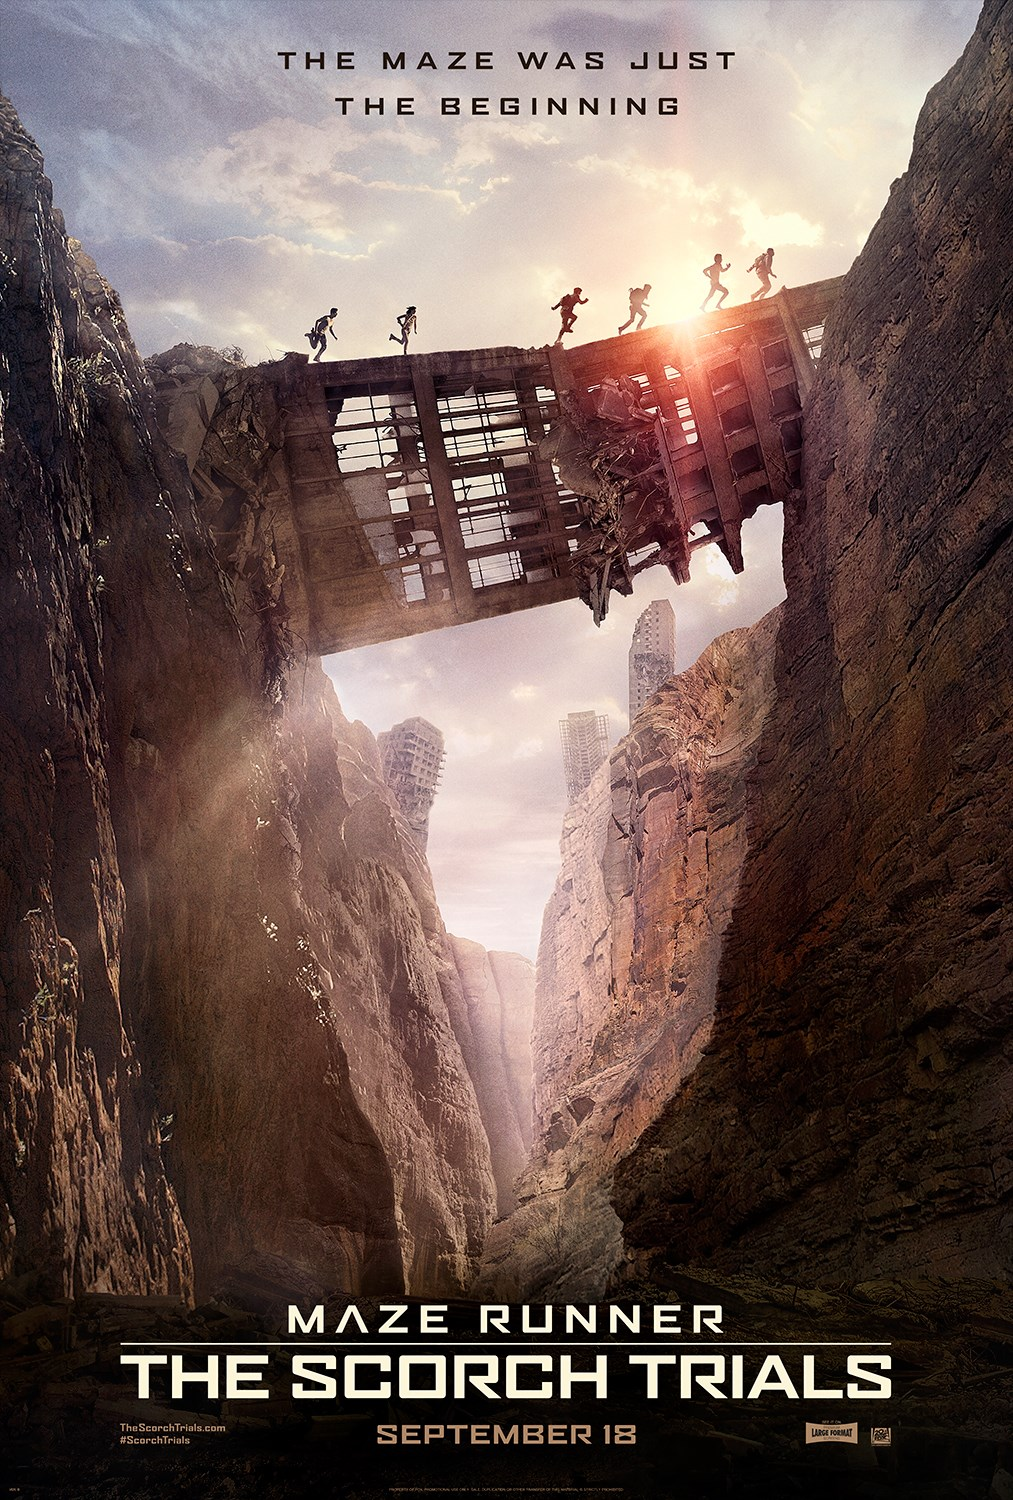 Maze Runner The Scorch Trials-Poster-22Junho2015